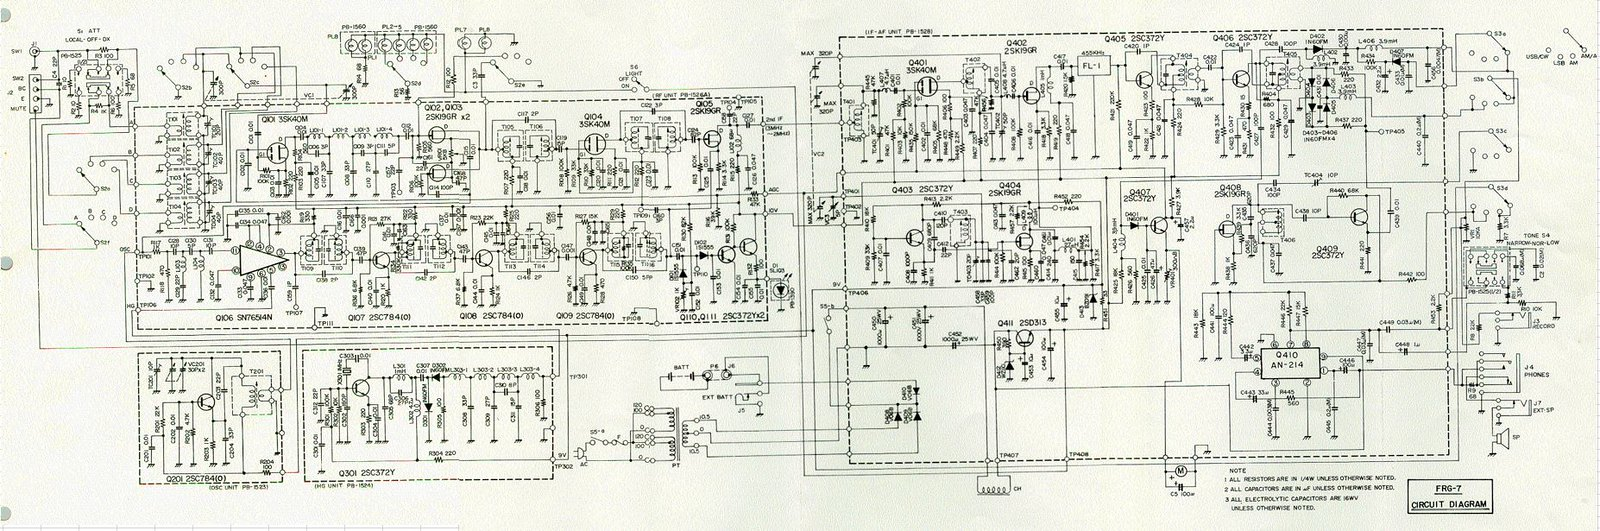 hight resolution of frg 7 replace electrolytic caps or leave well enough alone frg 7 circuit diagram